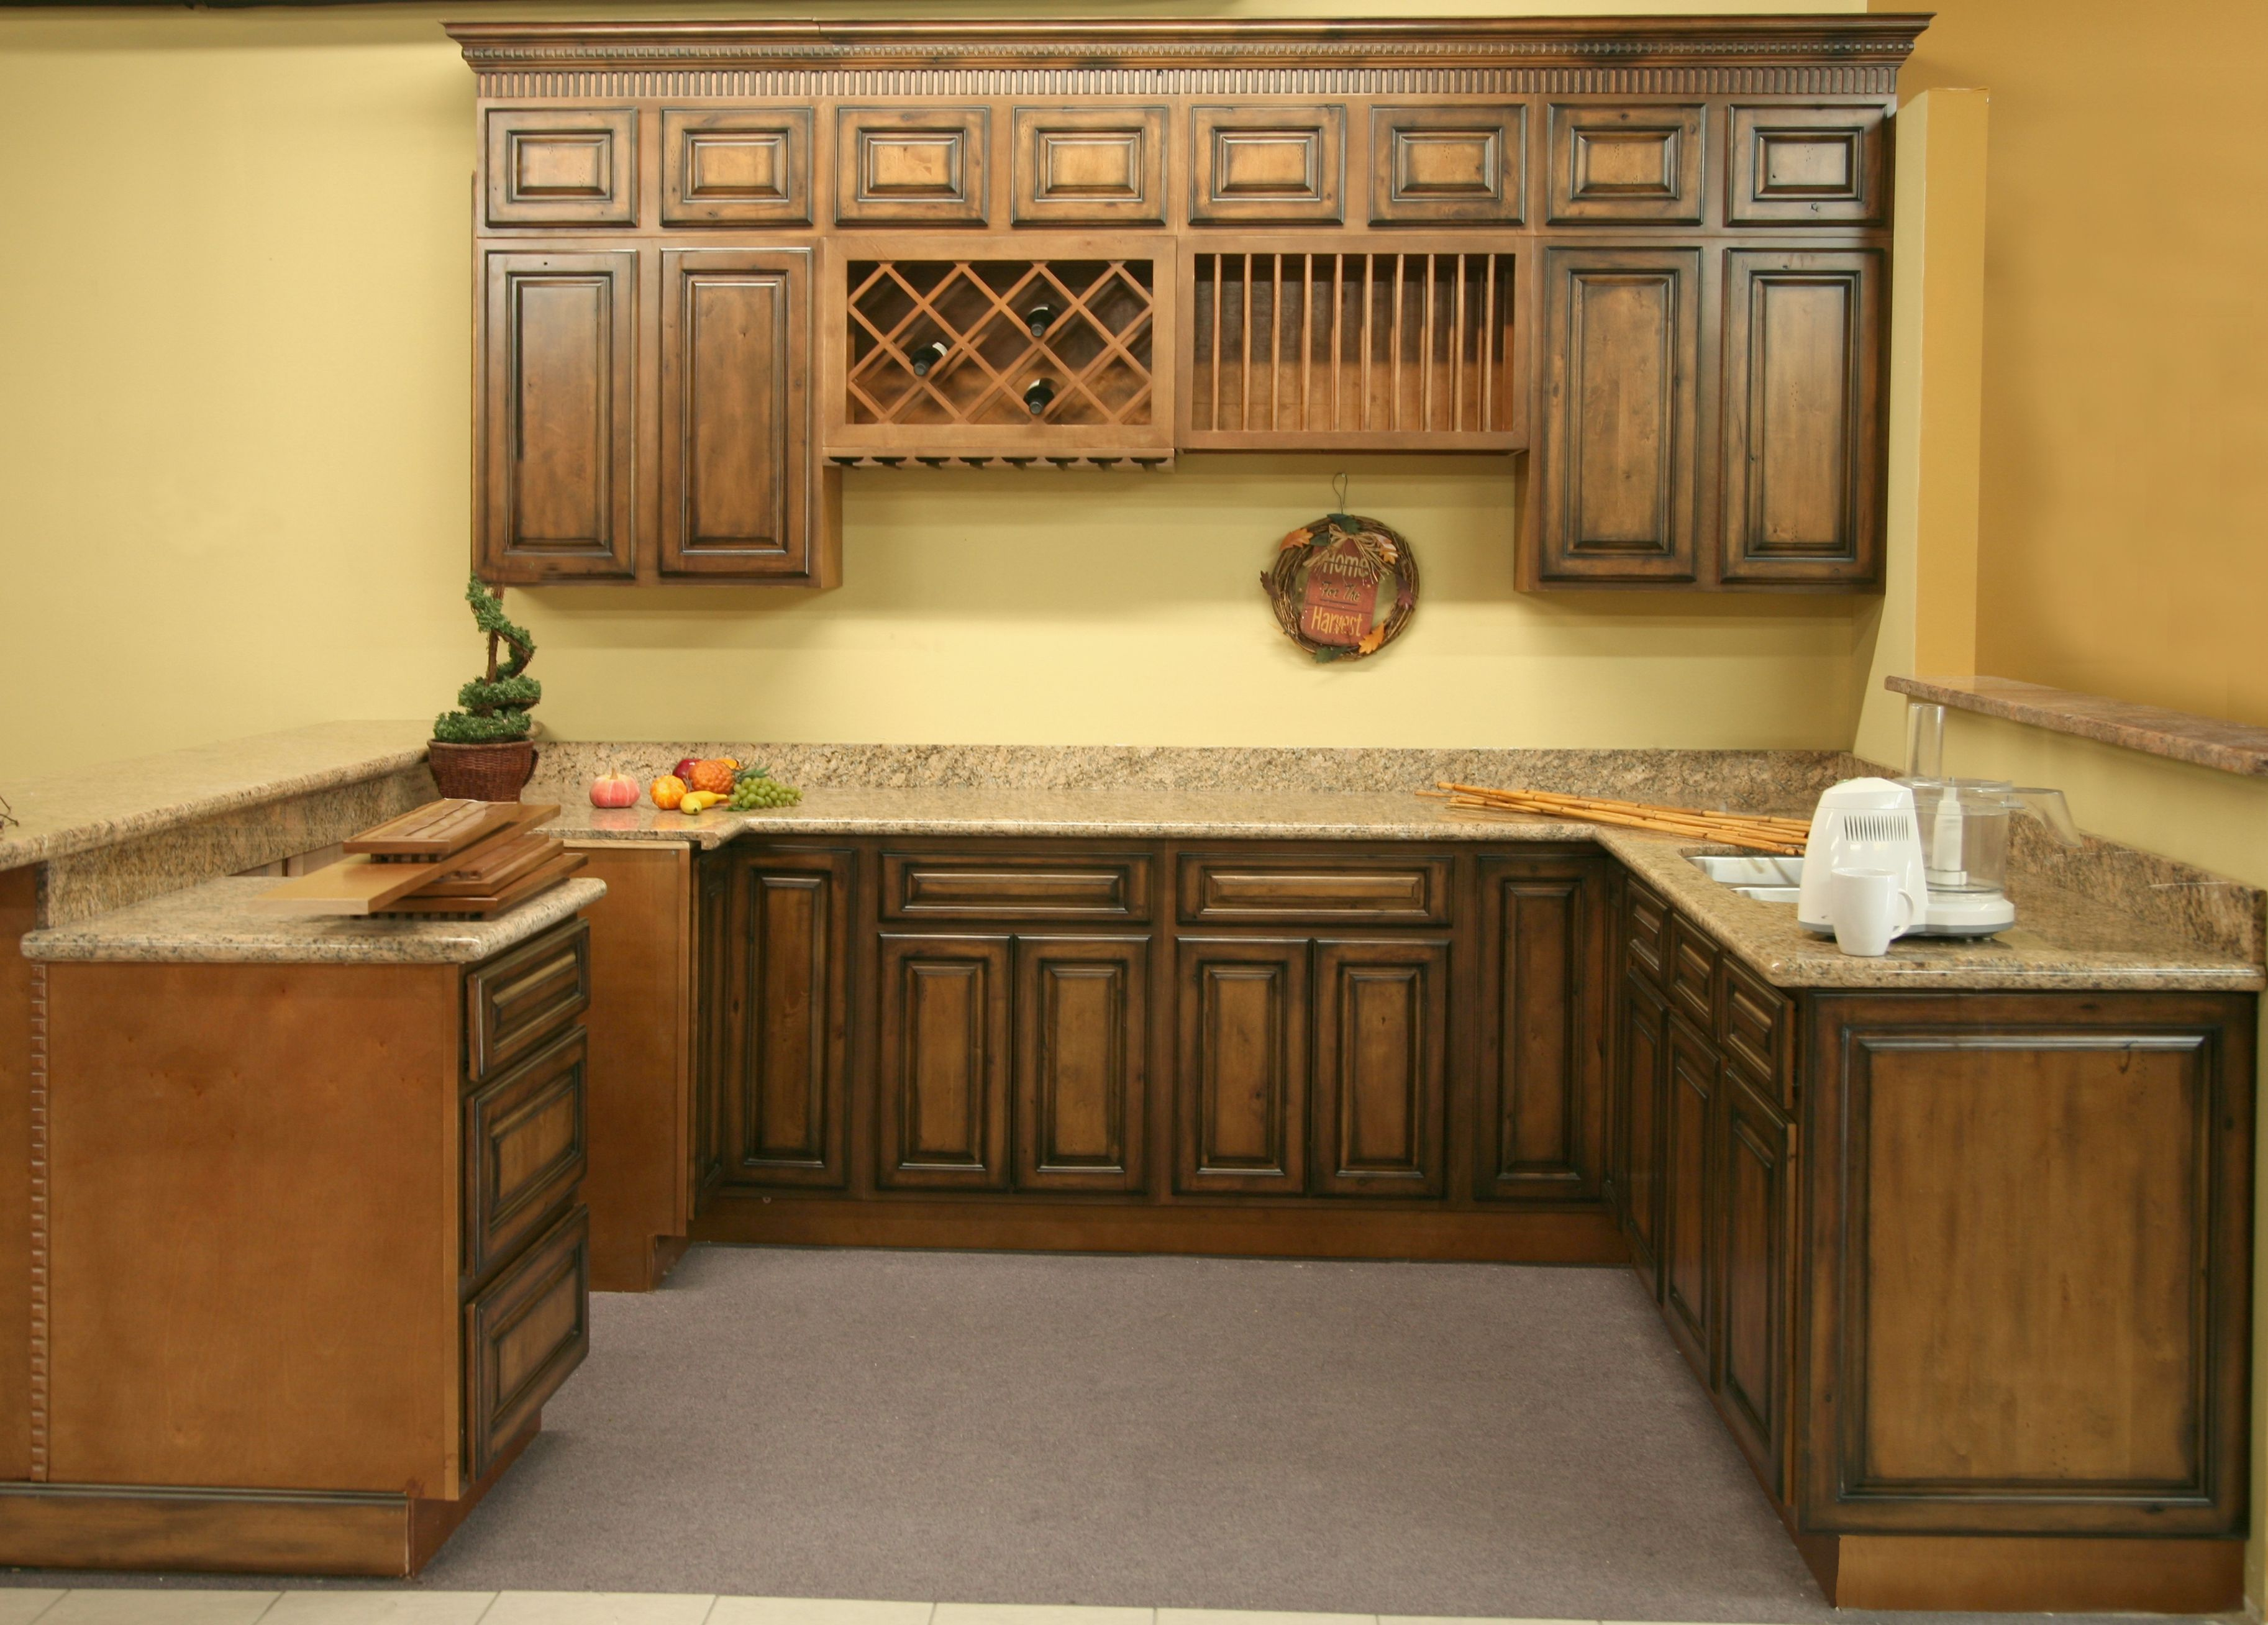 Kitchen cabinets rustic pecan maple kitchen vanity cabinets with easy cam lock